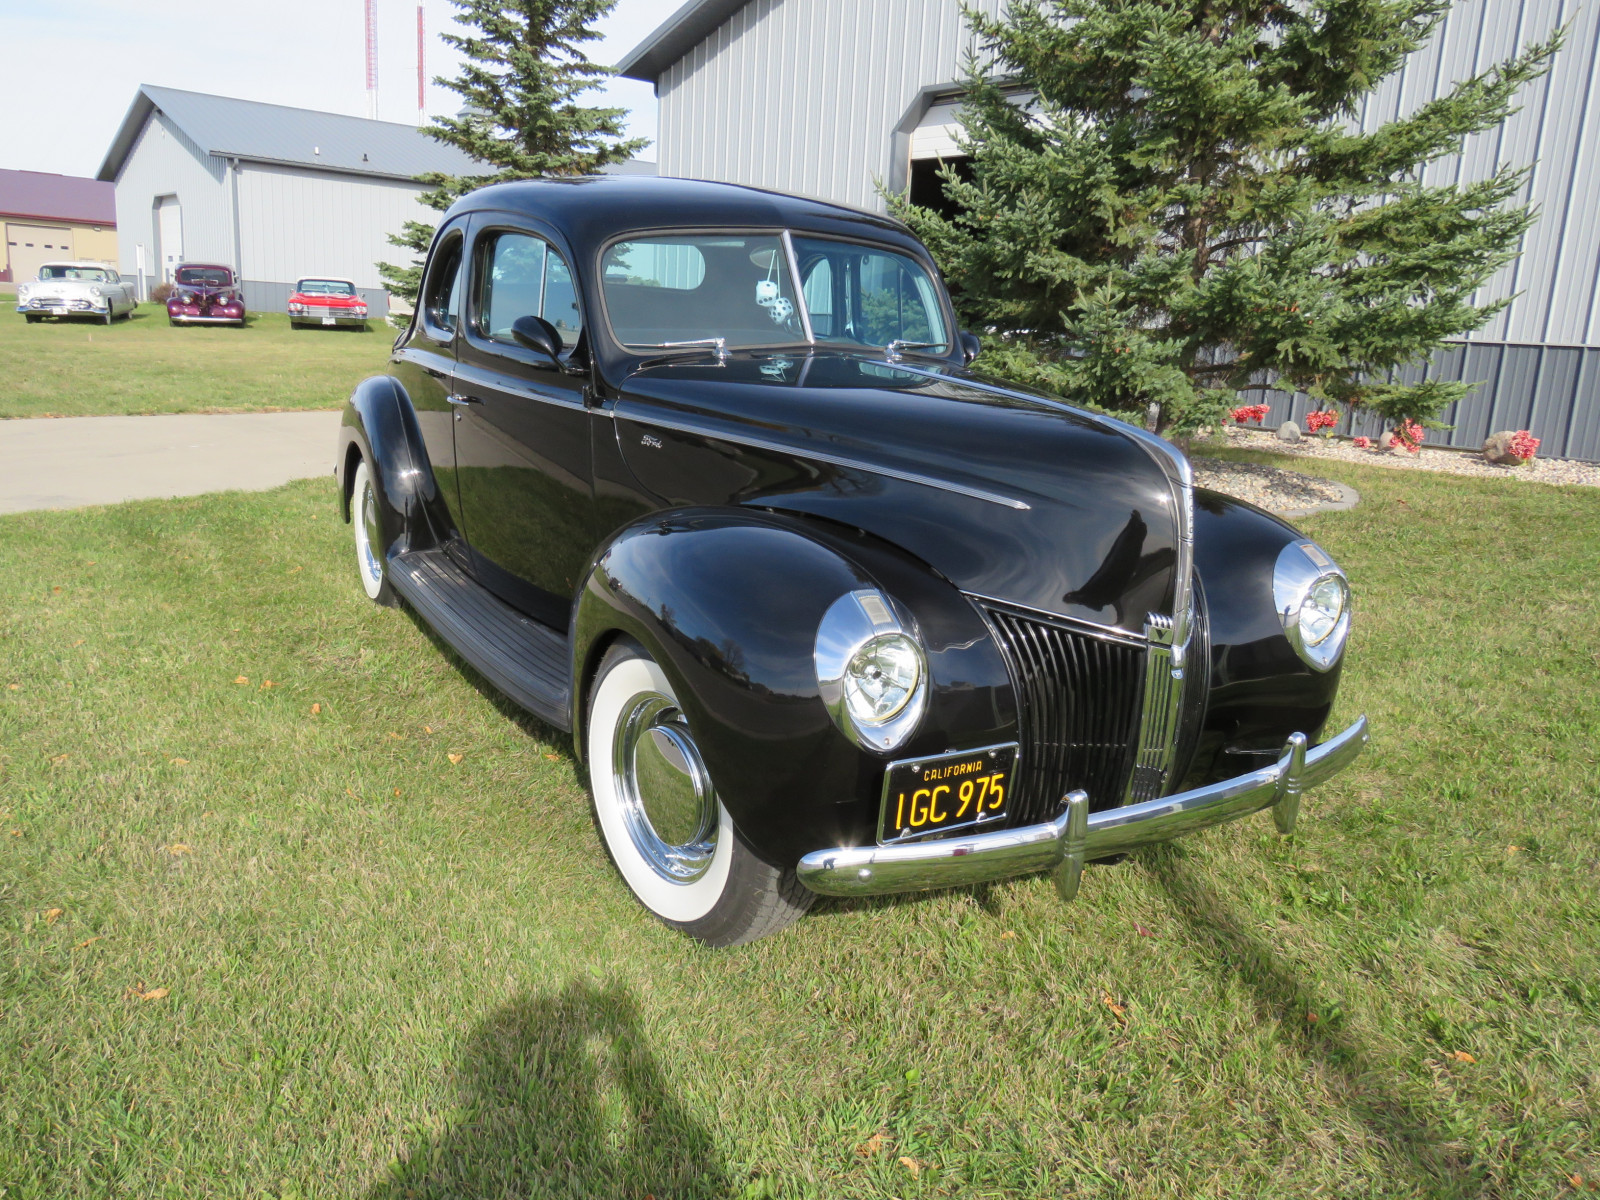 Beautiful 1940 Ford Coupe - Image 4